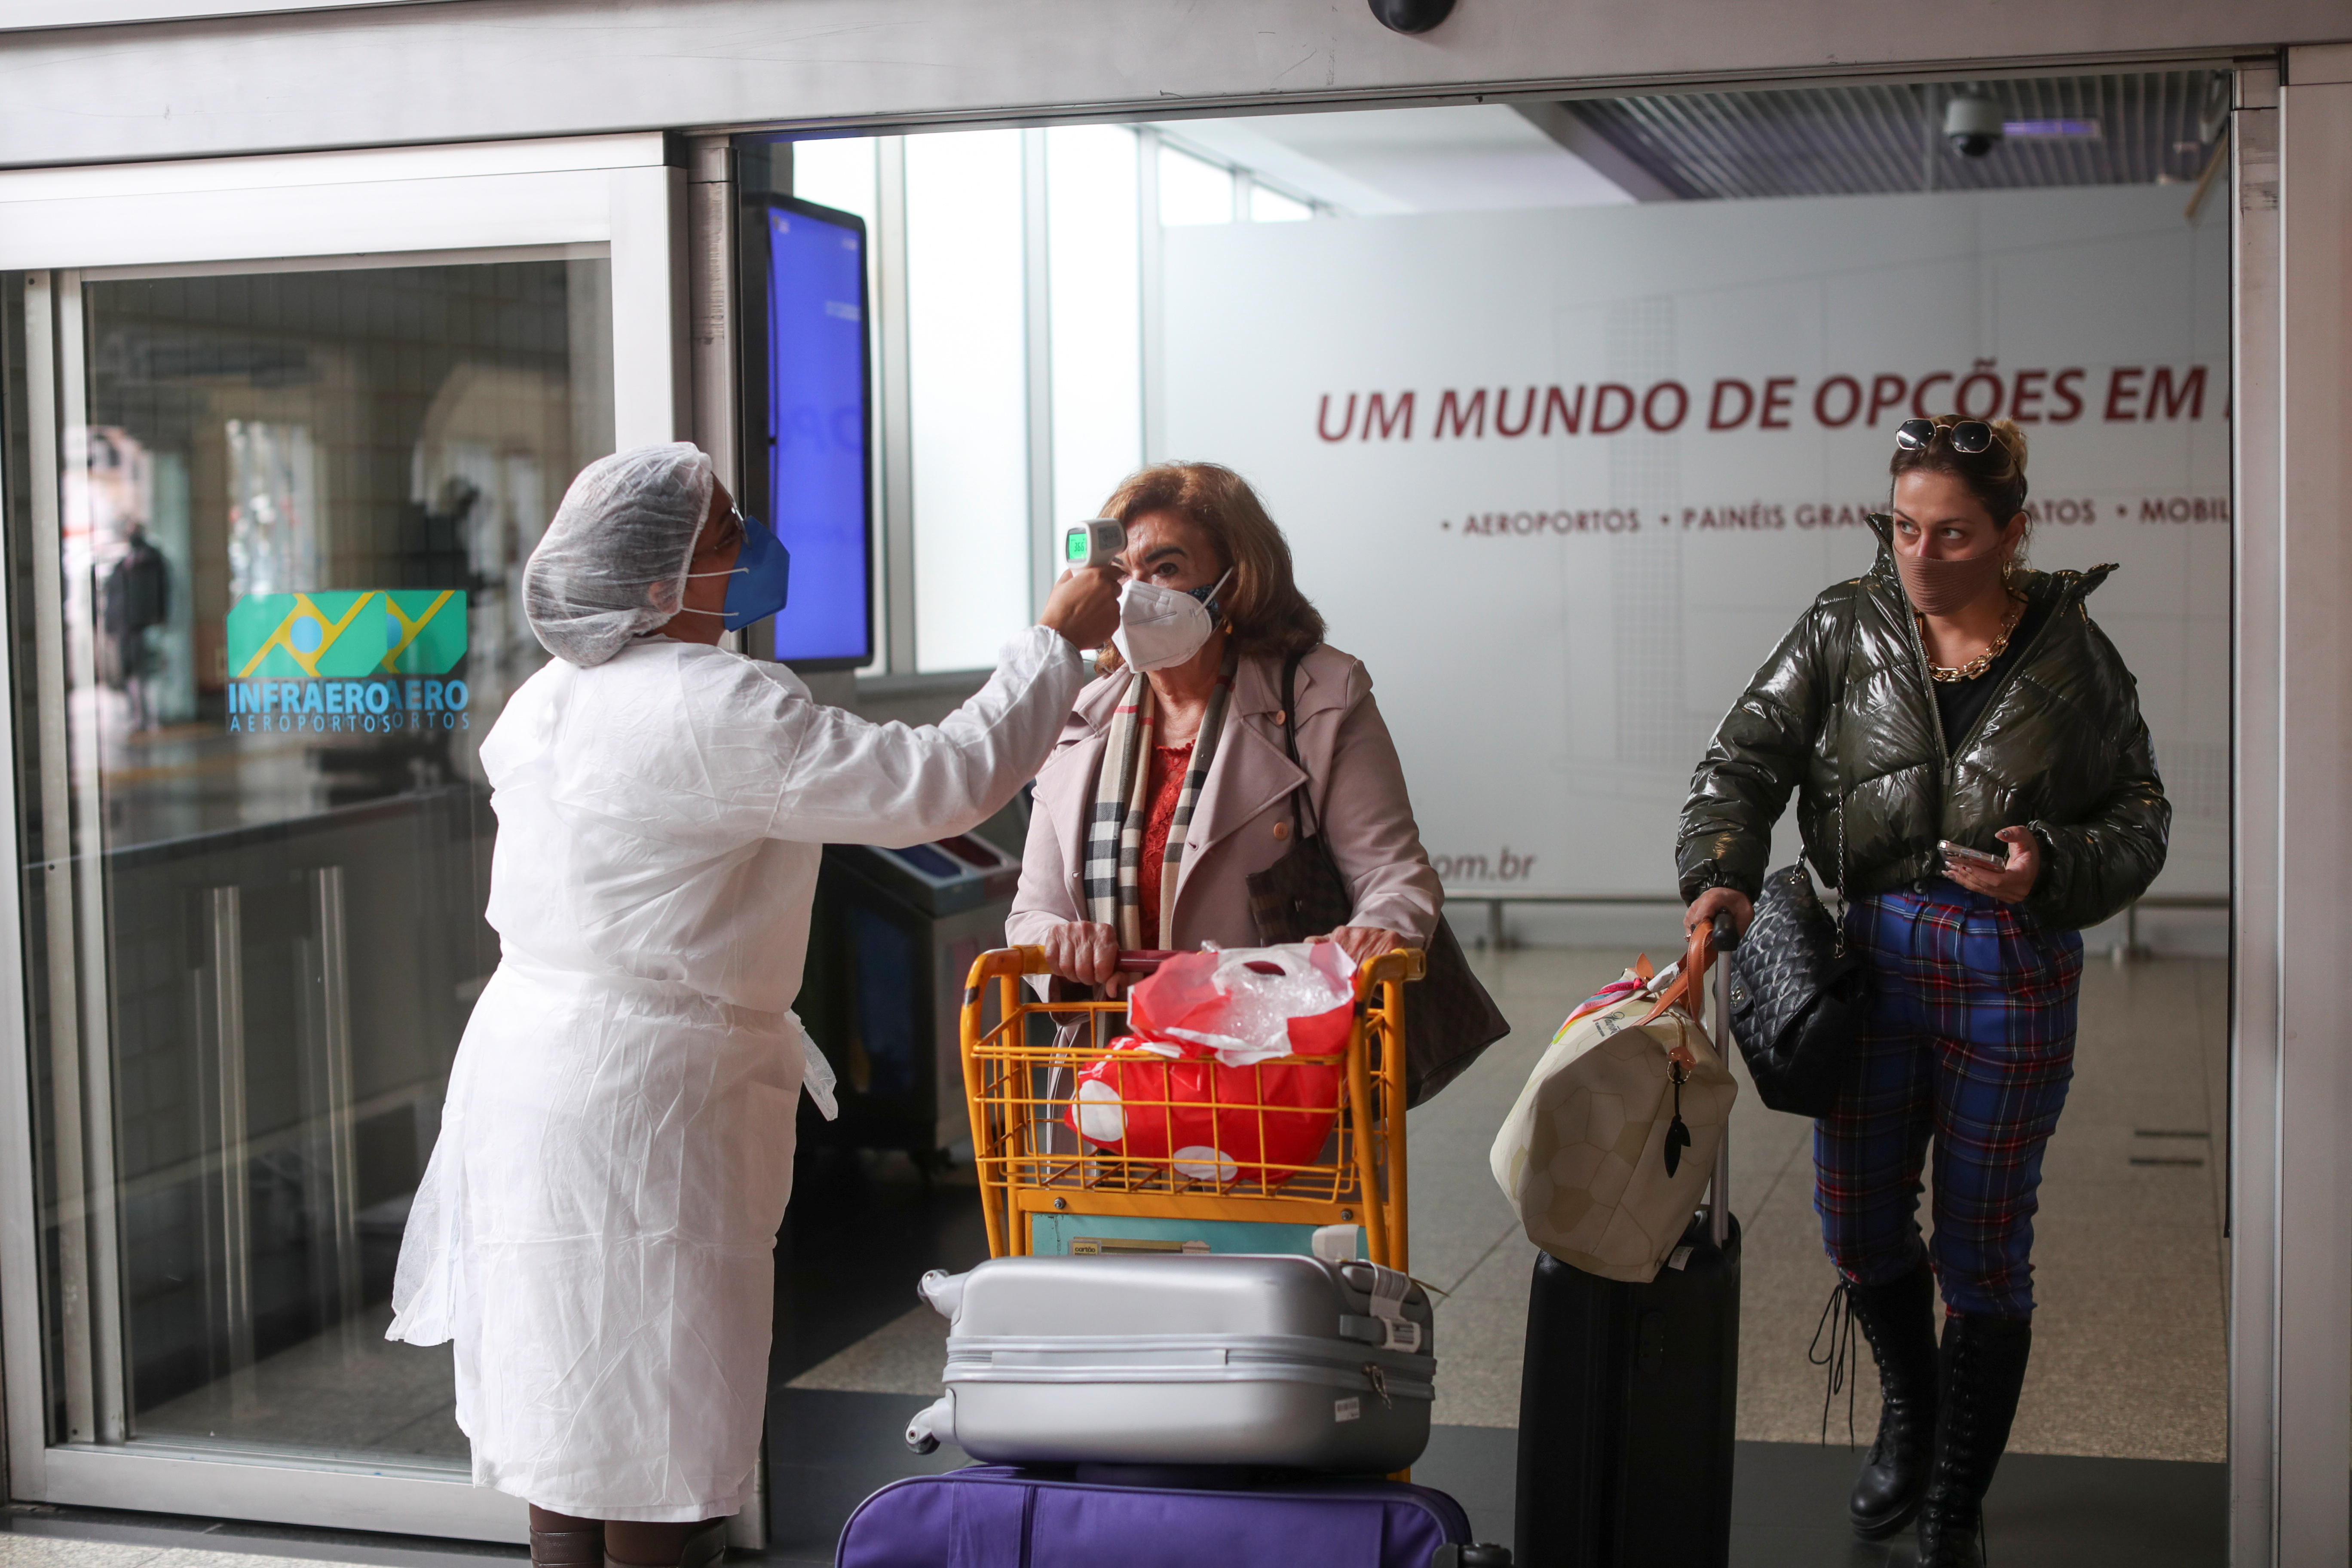 A health worker measures the temperature of a traveller in a sanitary barrier as she arrives at Congonhas airport in Sao Paulo, Brazil May 31, 2021. REUTERS/Amanda Perobelli